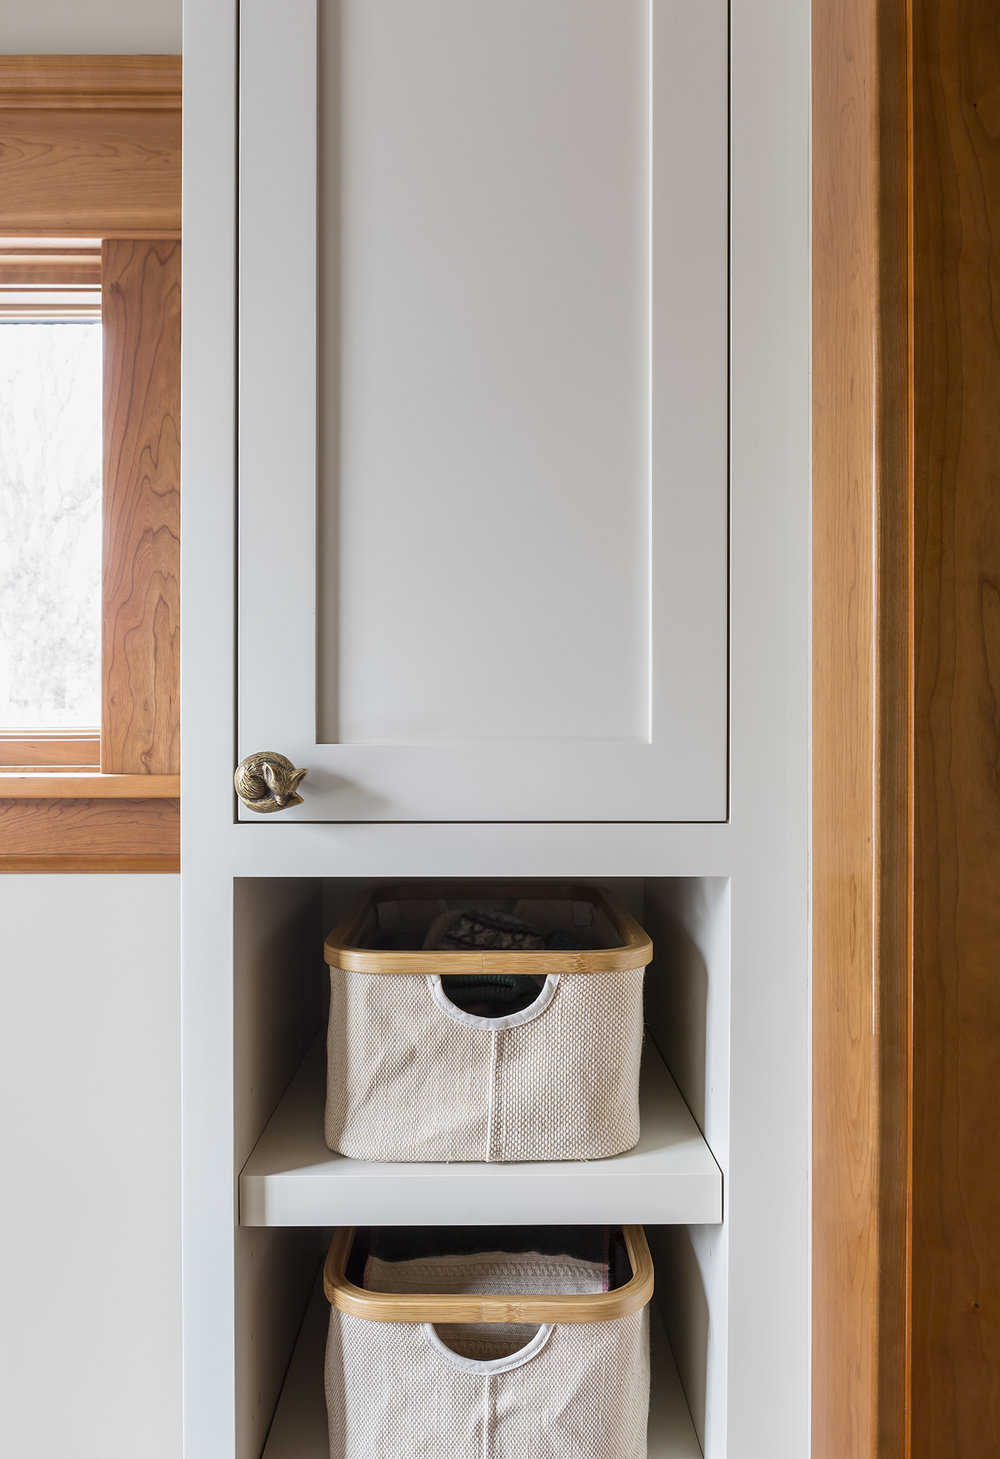 The custom cabinets are painted a subtle khaki color and the natural baskets provide storage. Whimsical hardware adds a playful touch.